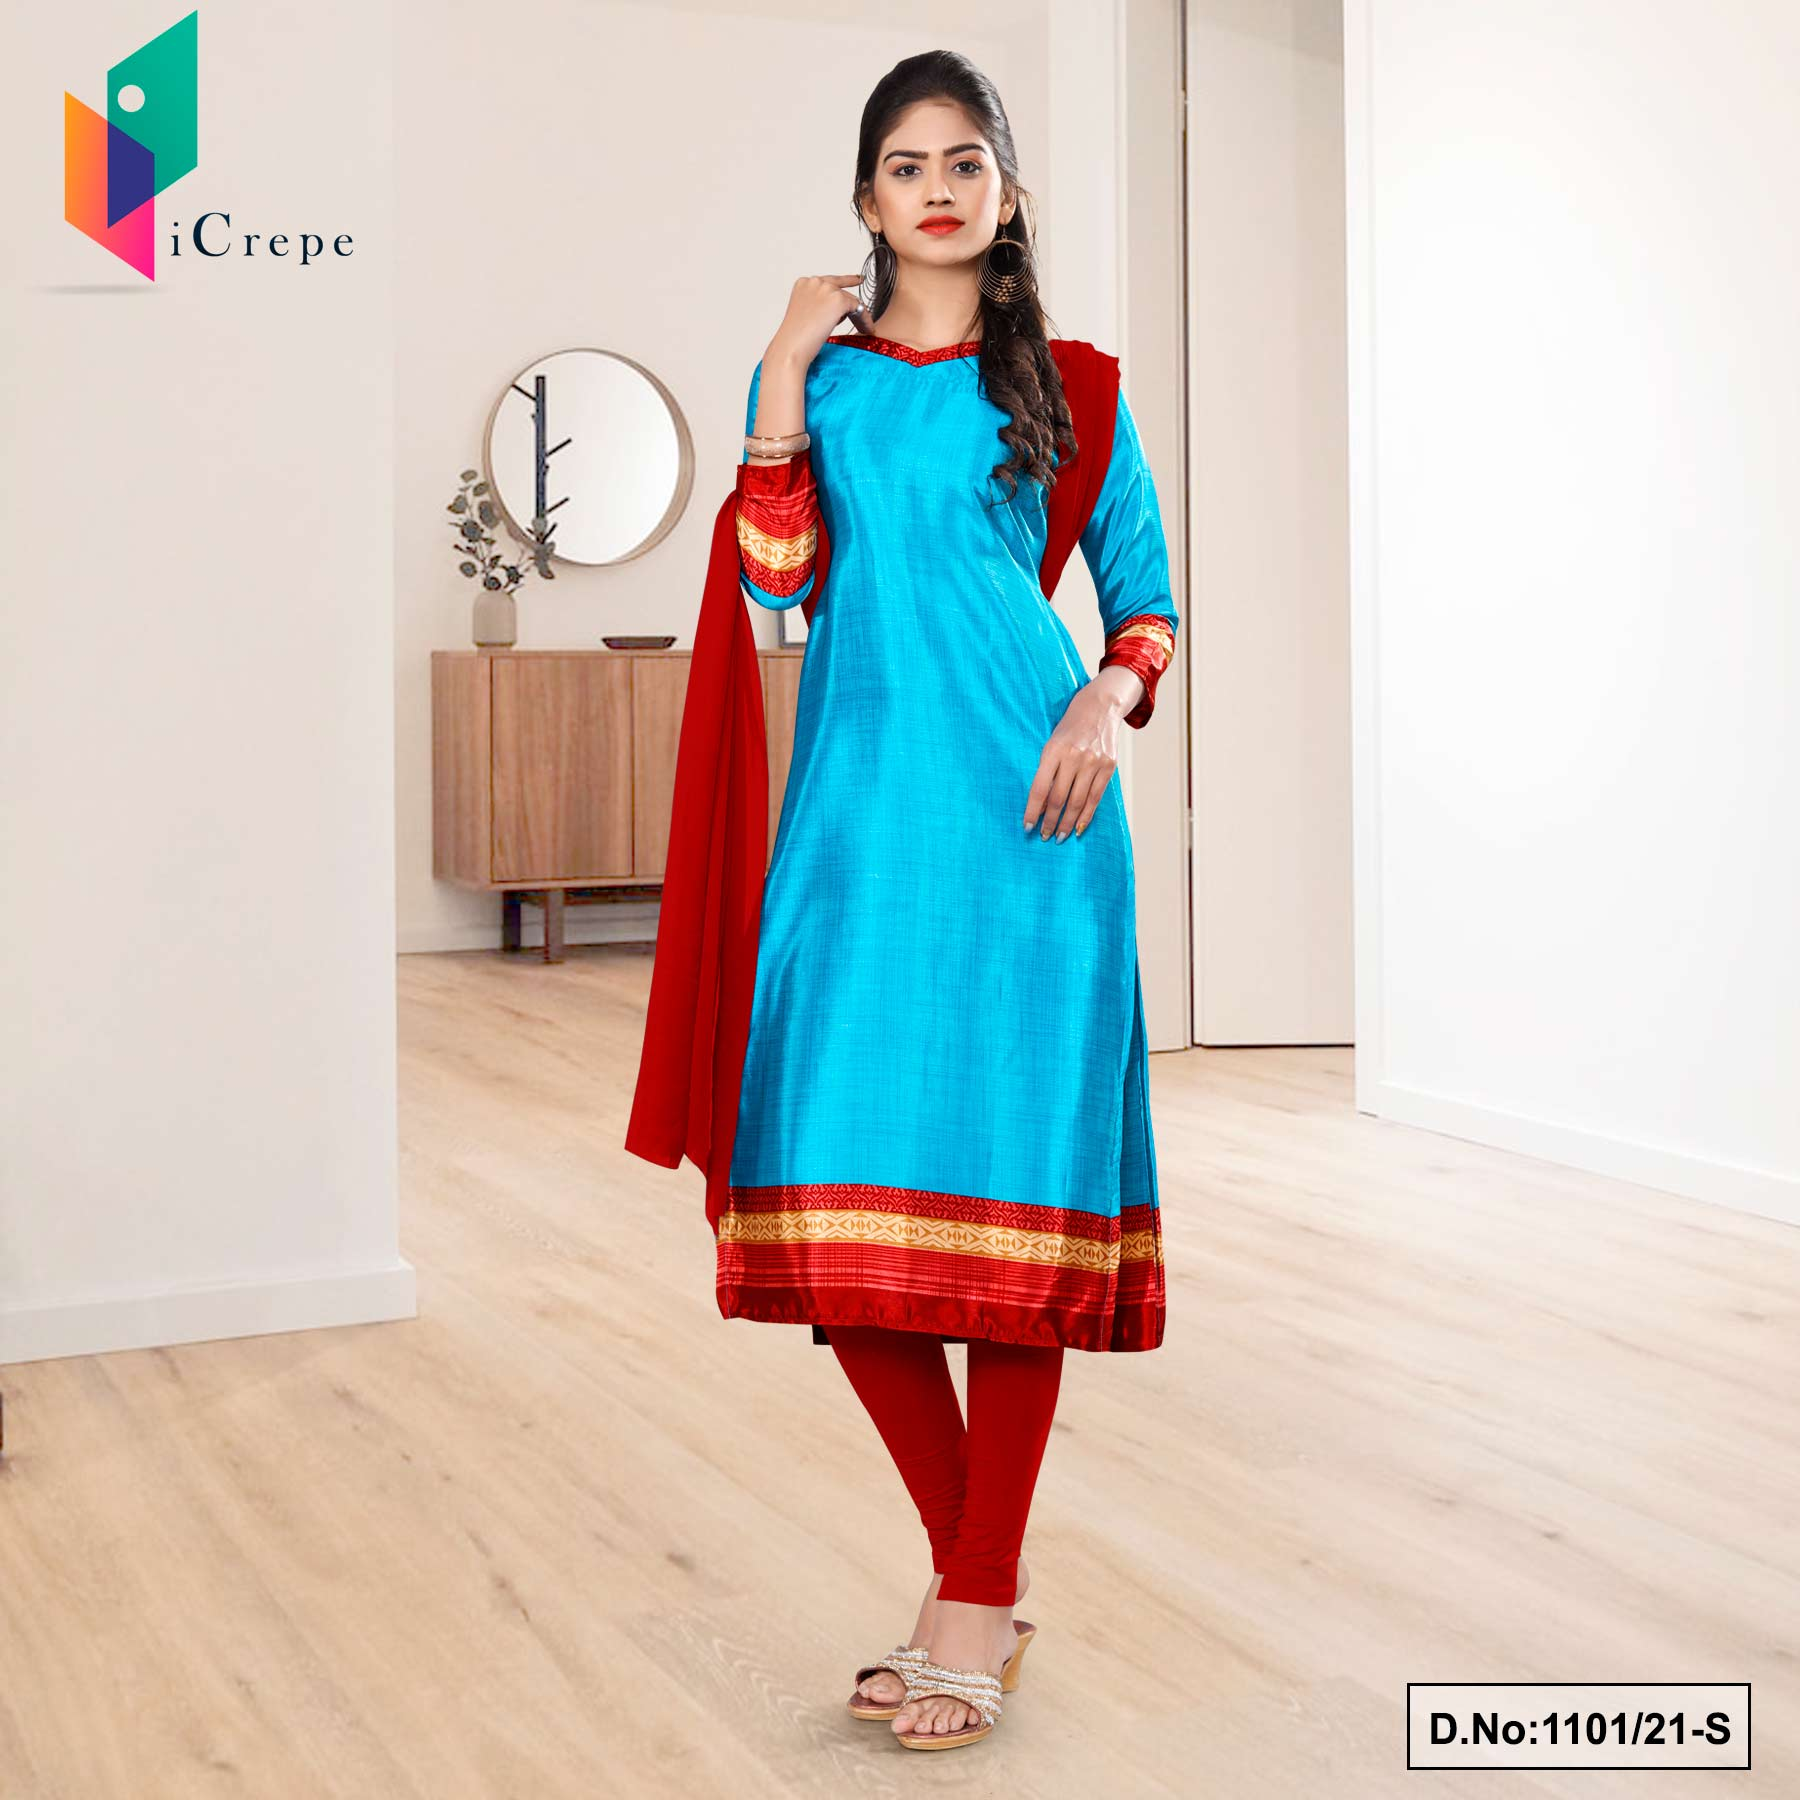 Sky Blue Red Premium Italian Silk Crepe Uniform Salwar Kameez for Hospital Staff